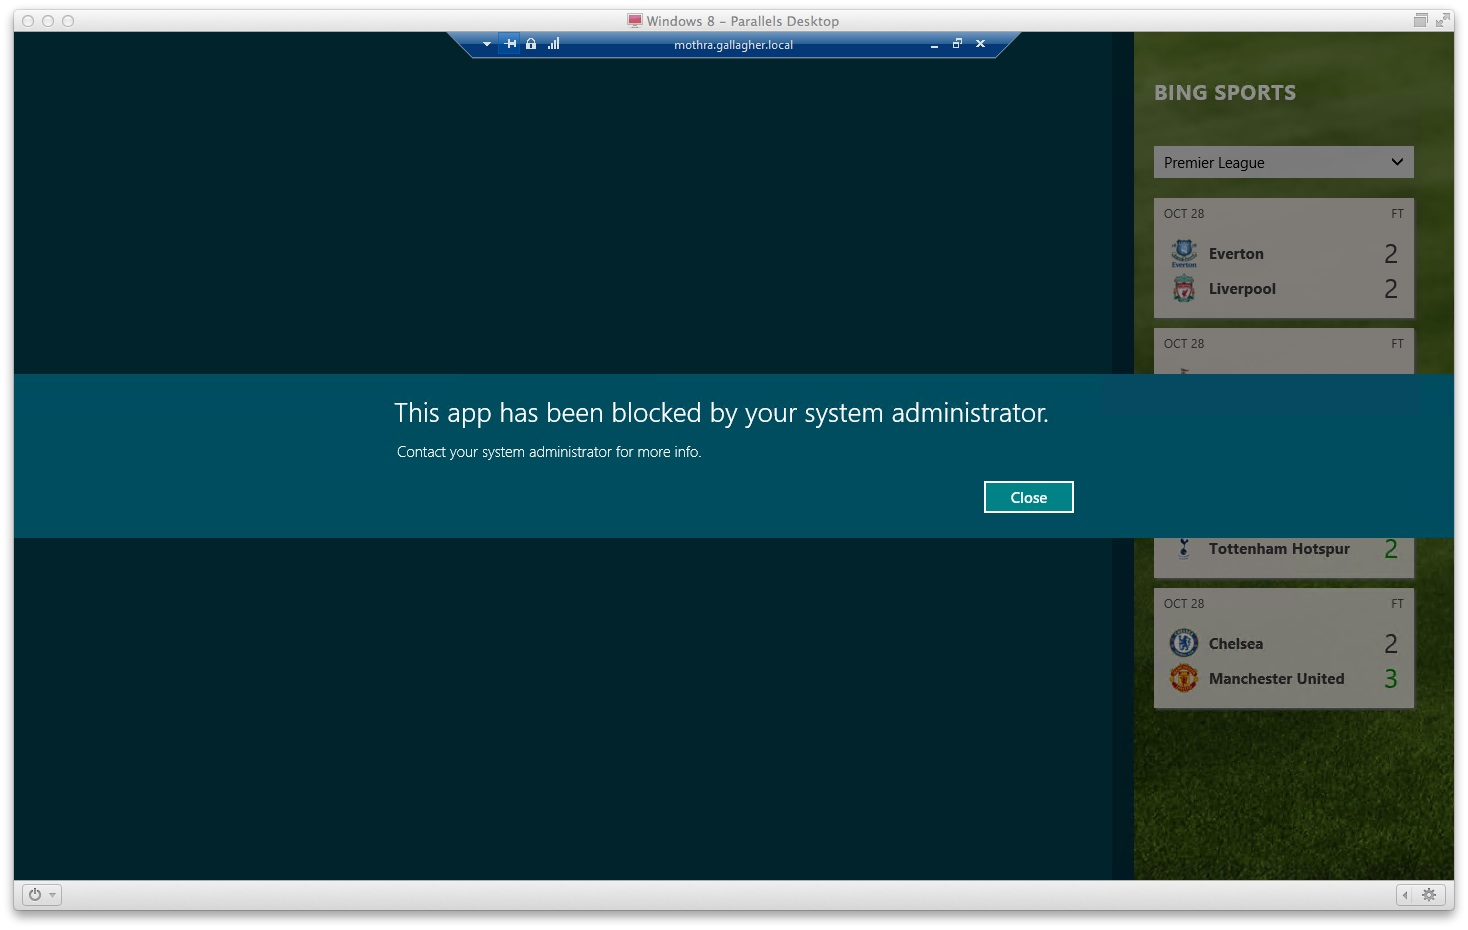 Windows 8 Enterprise informs the user that AppLocker has app blocked them.